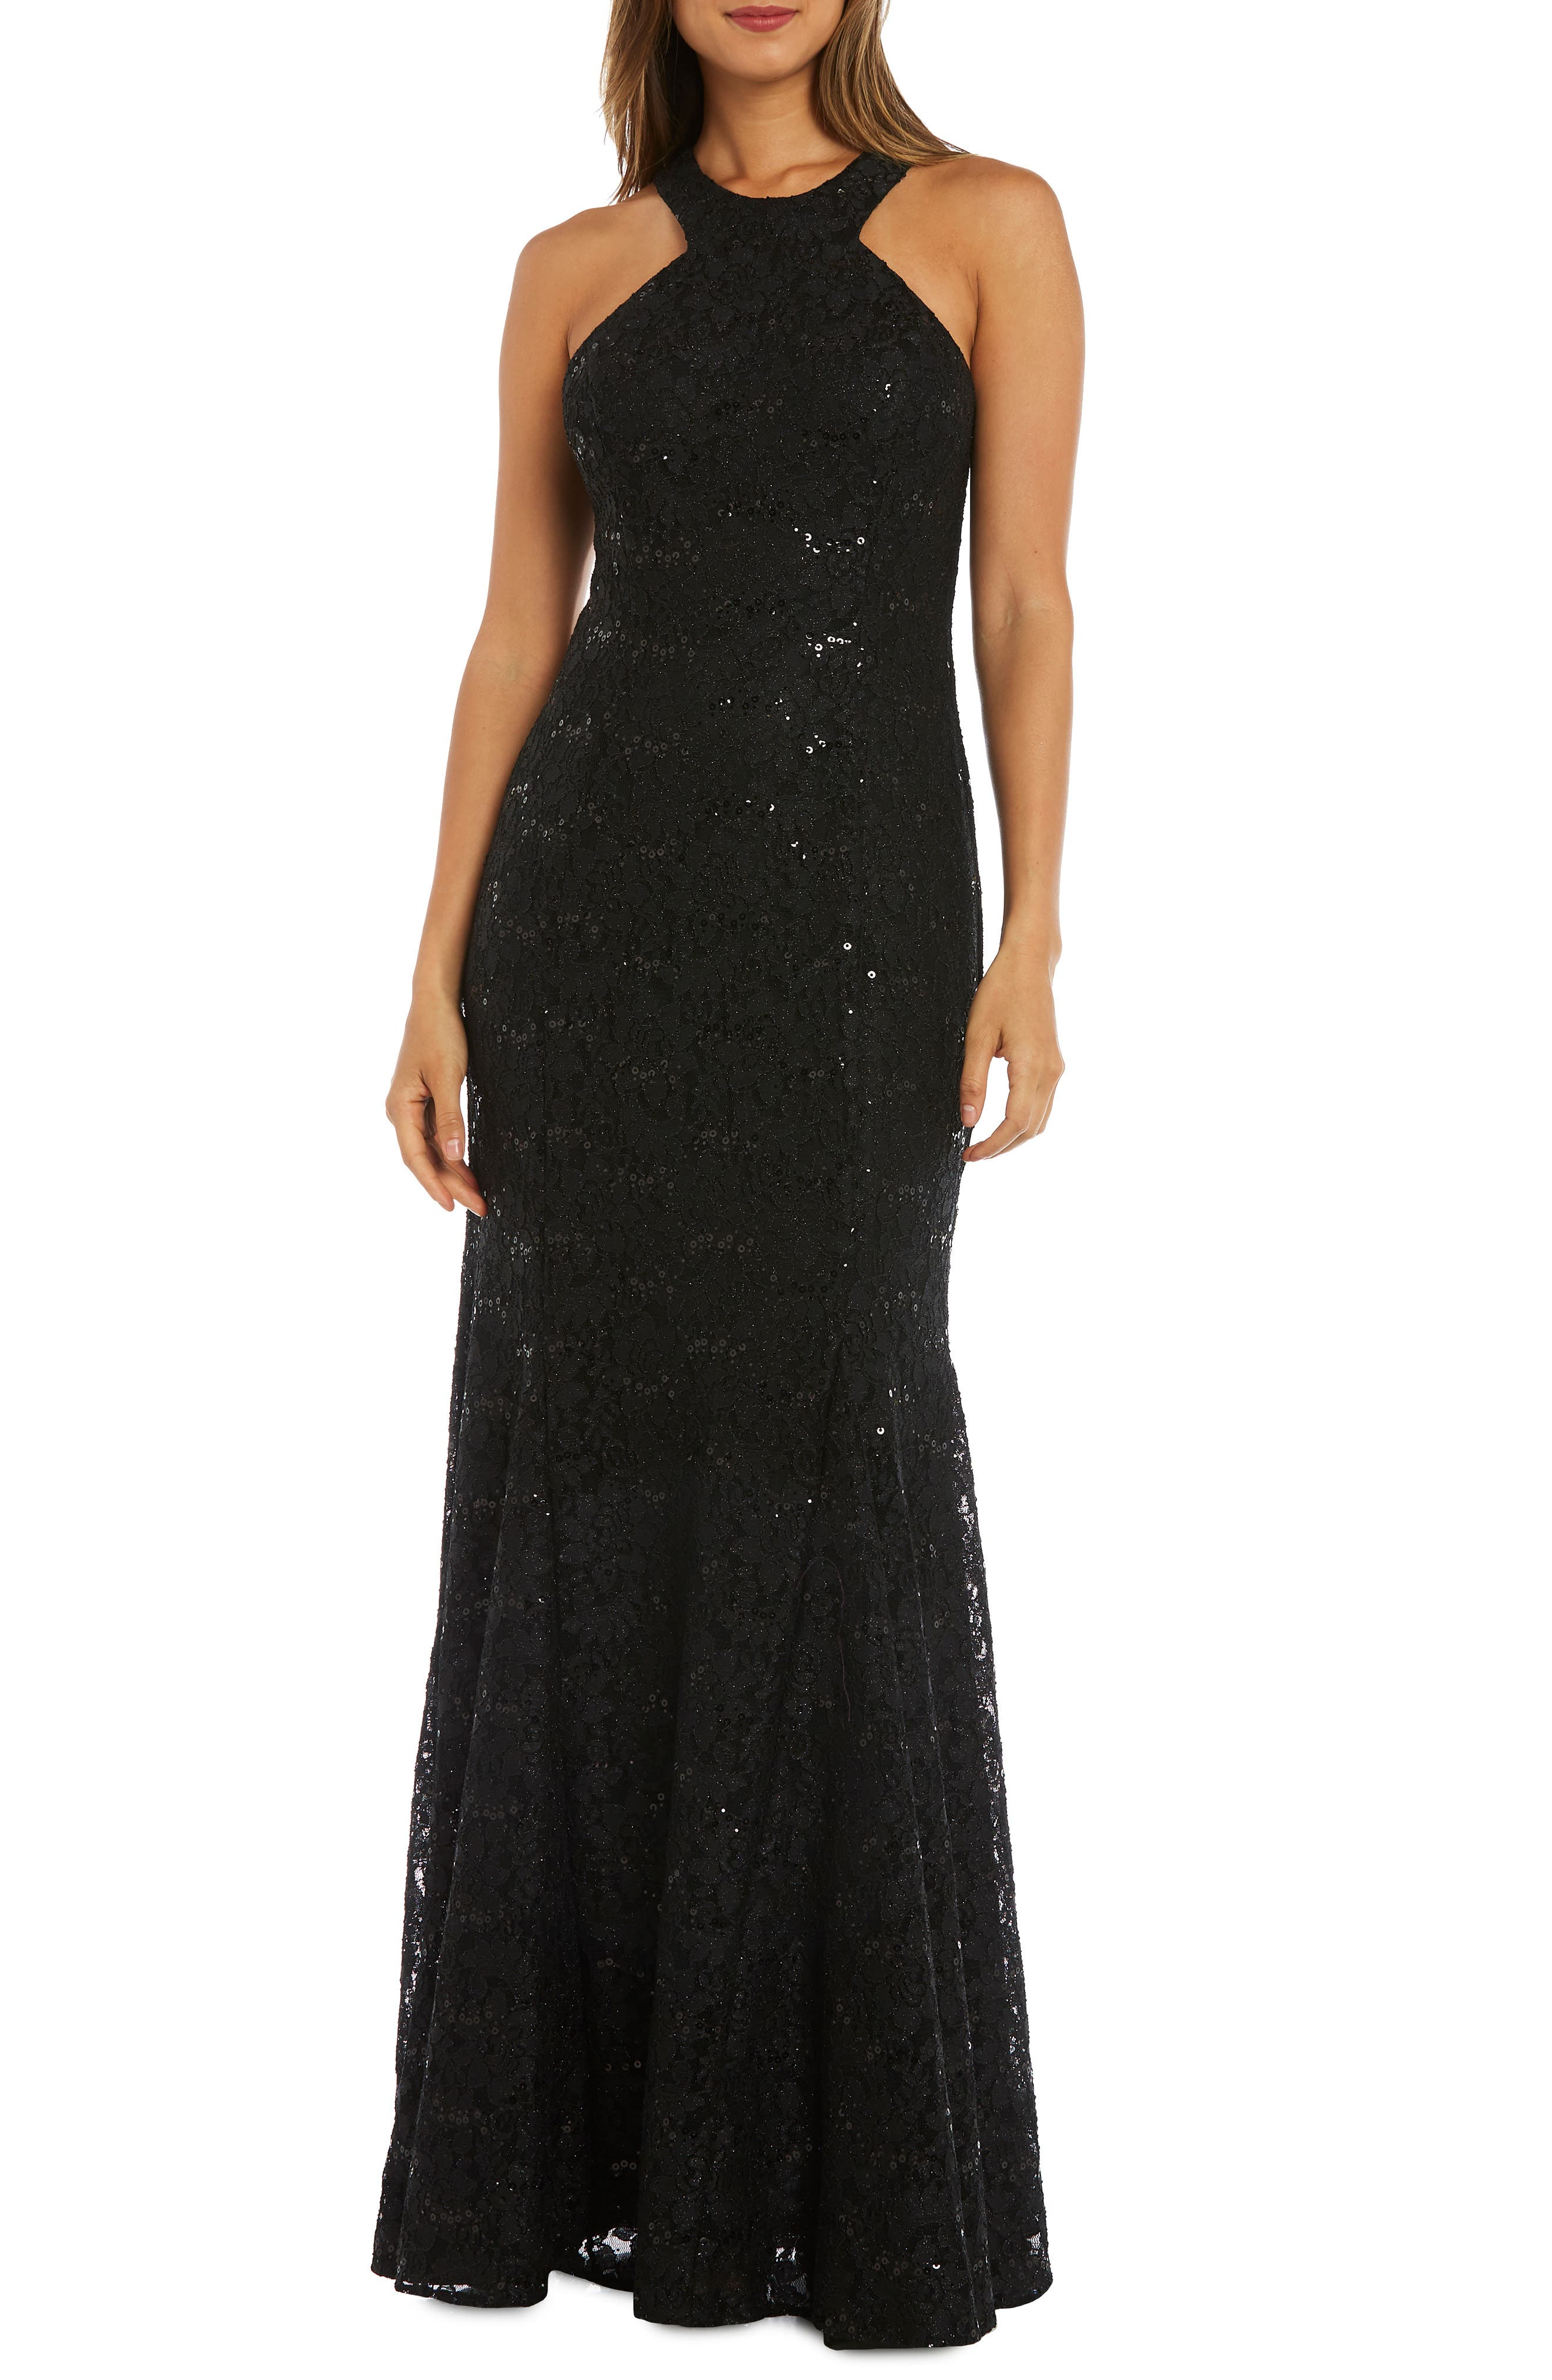 MORGAN & CO.,                             Strappy Back Sequin Lace Gown,                             Main thumbnail 1, color,                             BLACK